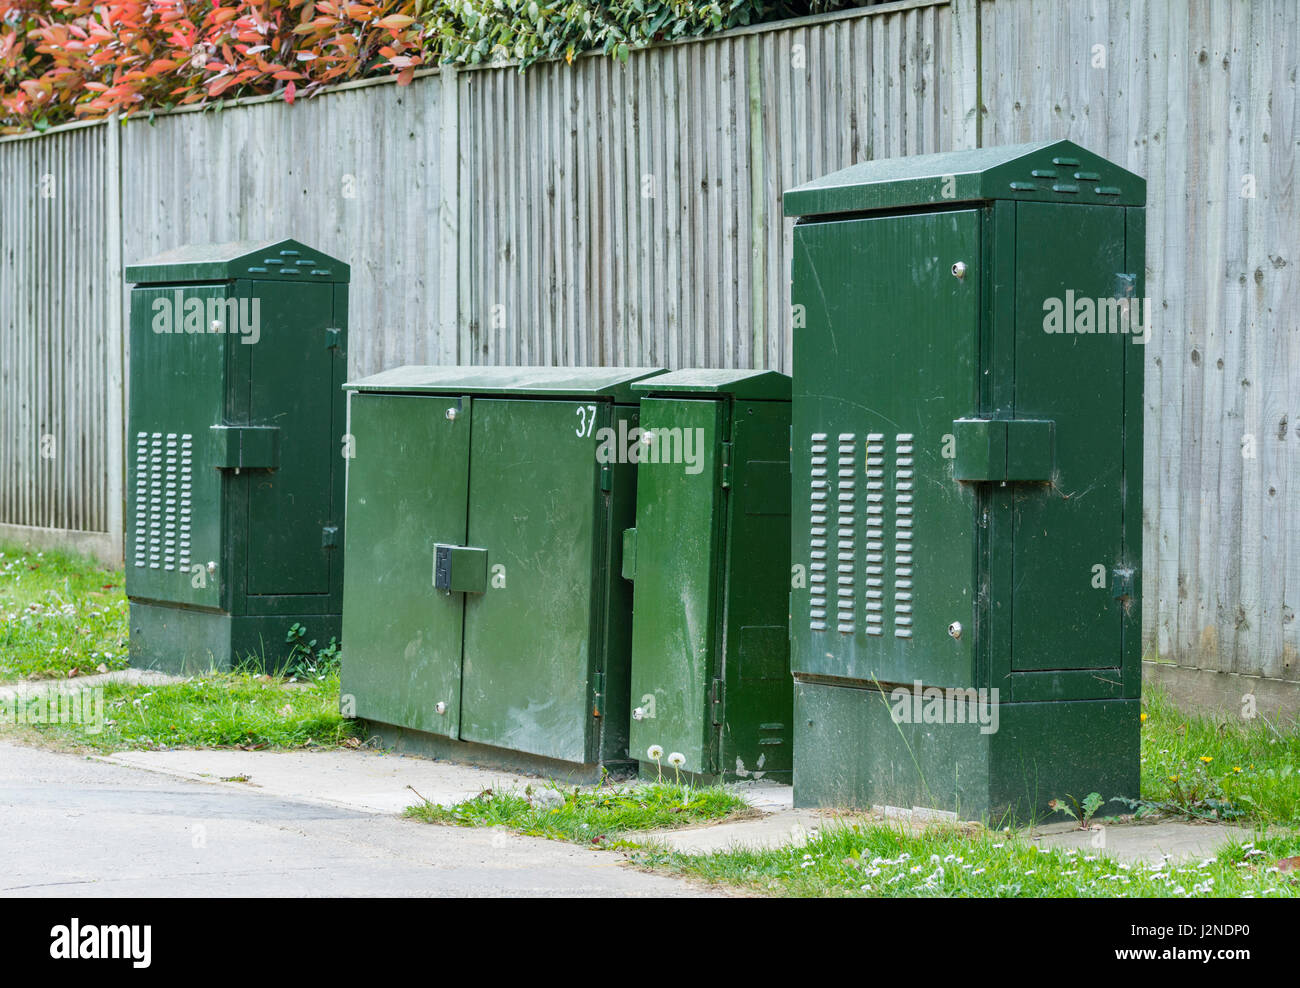 BT green PCP telephone cabinets and ECI 128/256 FTTC cabinets on a street in the UK. - Stock Image